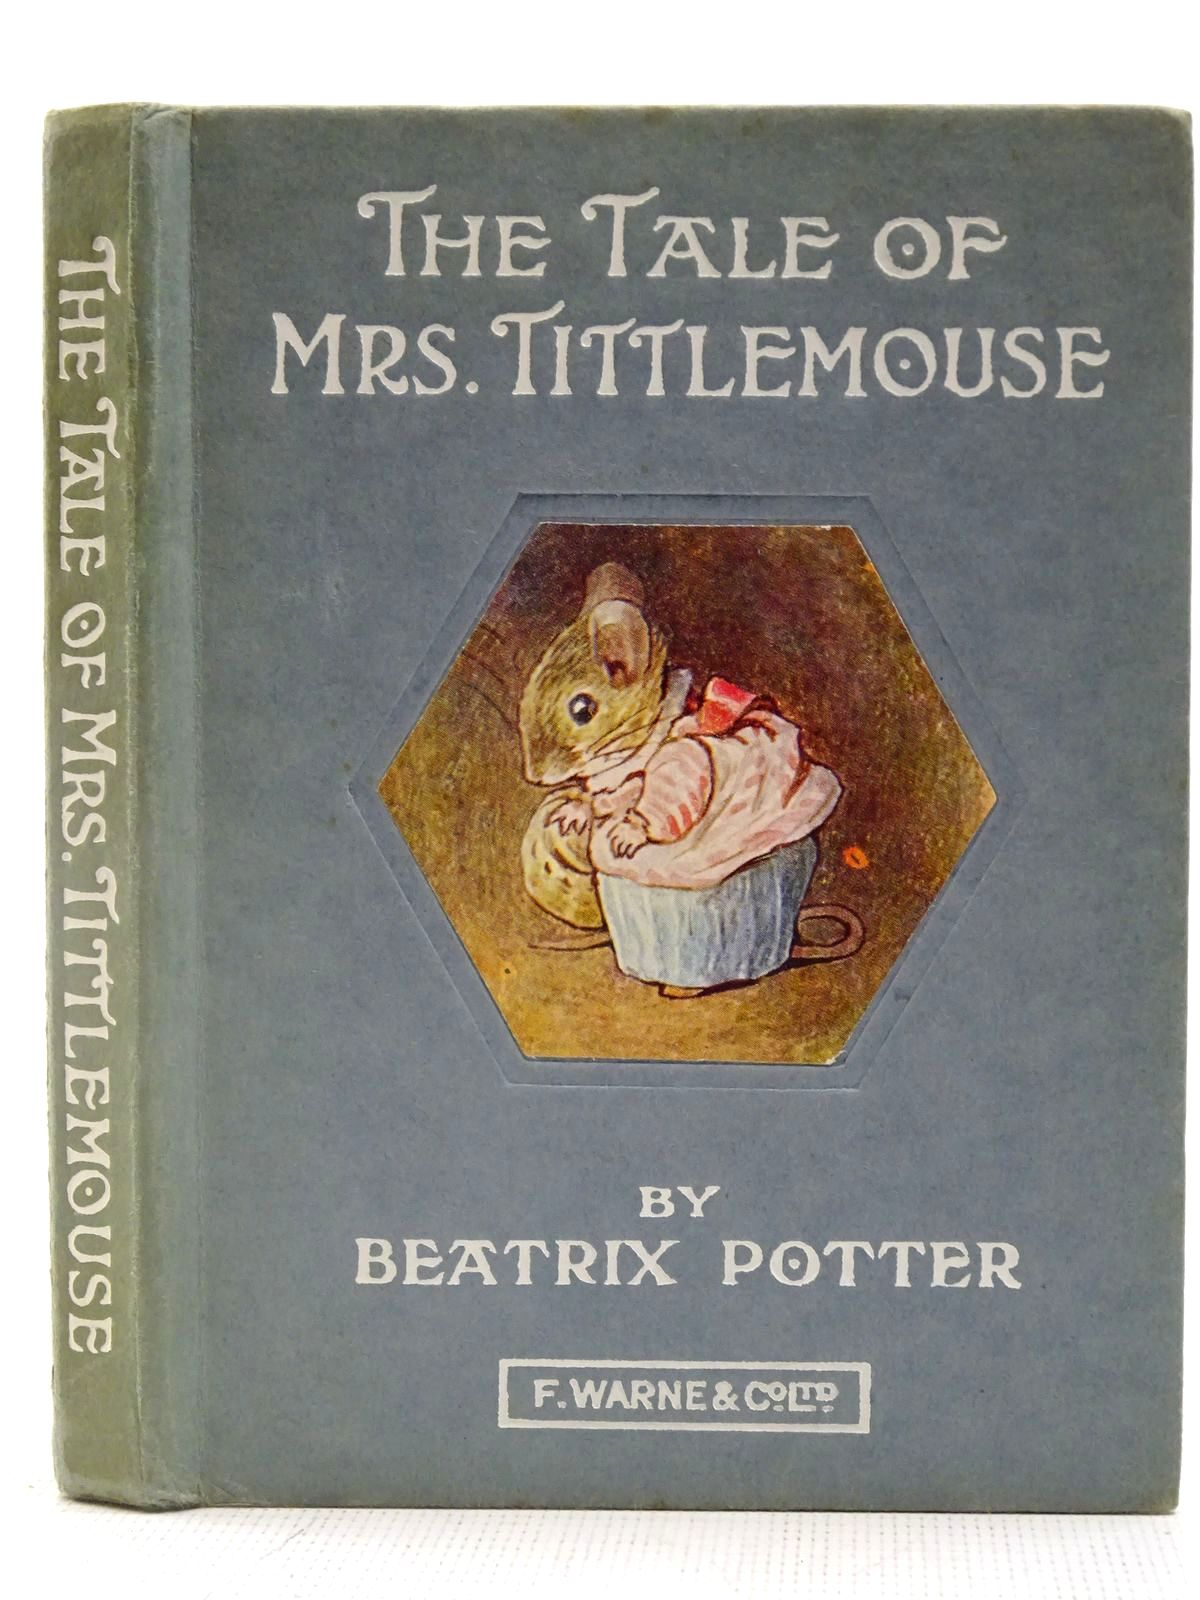 Photo of THE TALE OF MRS. TITTLEMOUSE written by Potter, Beatrix illustrated by Potter, Beatrix published by Frederick Warne & Co Ltd. (STOCK CODE: 2127639)  for sale by Stella & Rose's Books